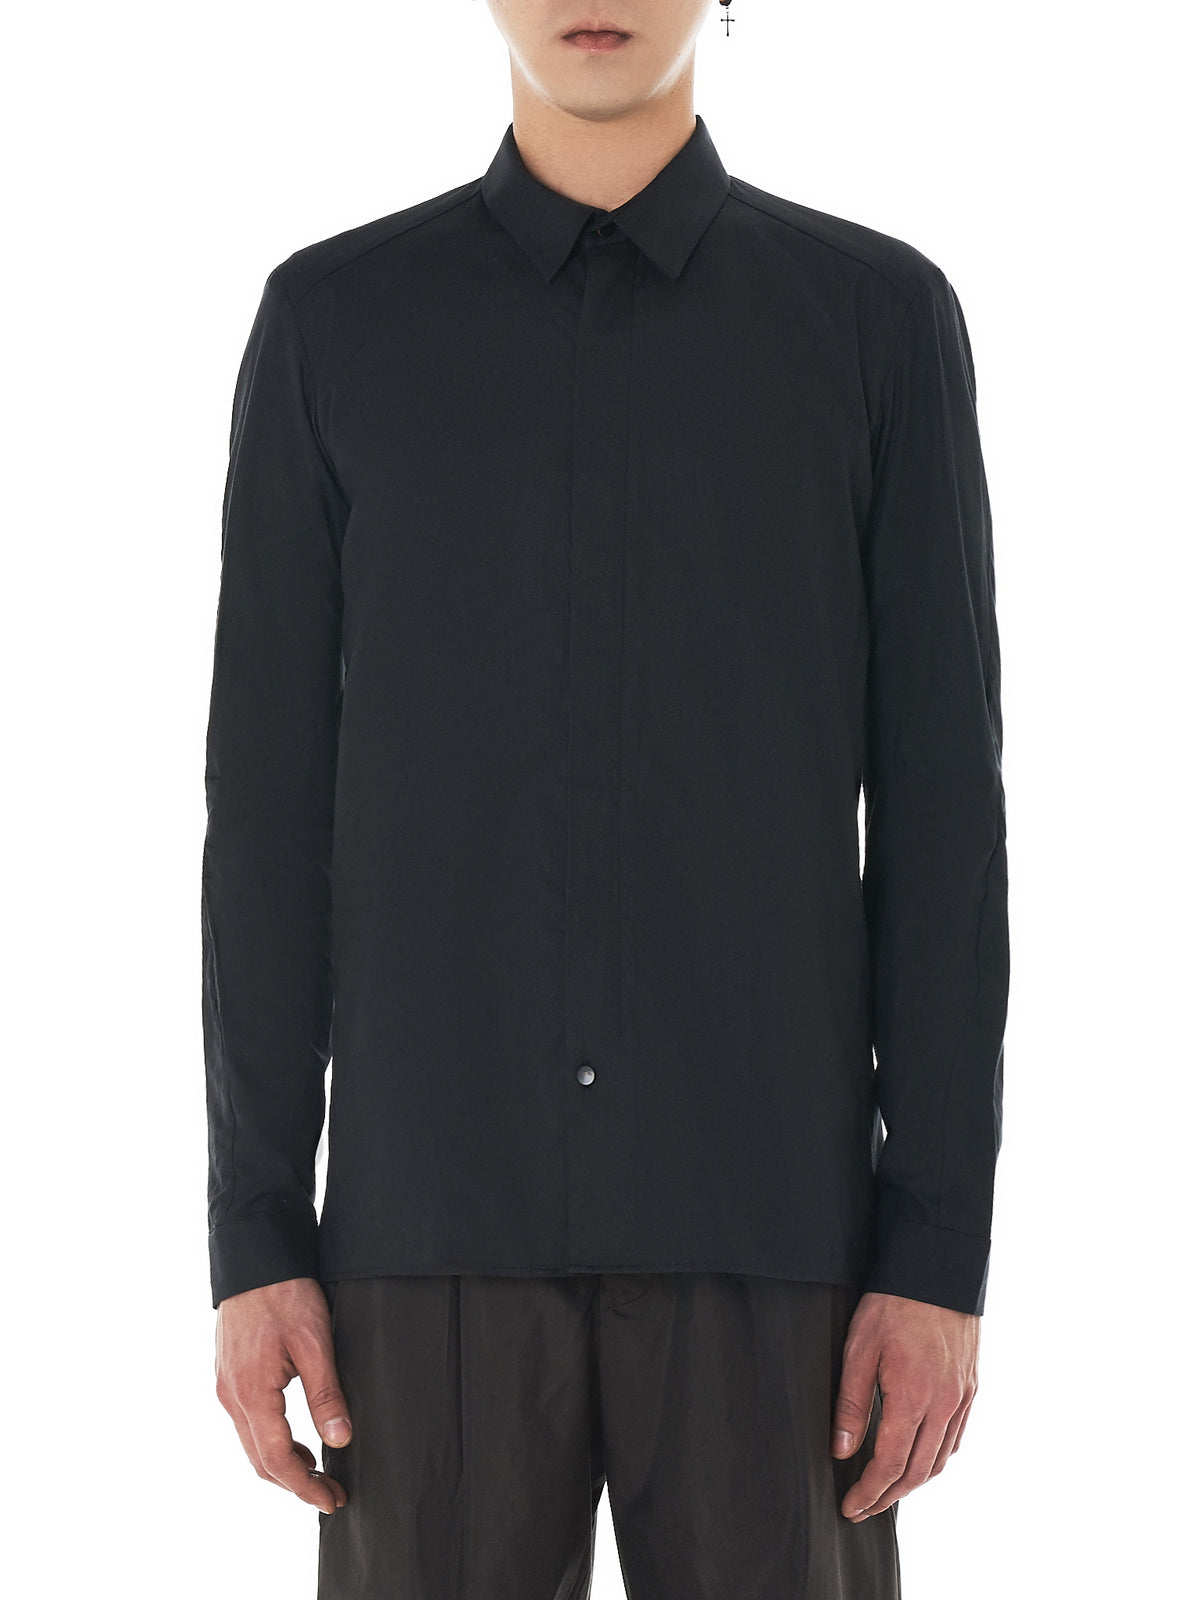 Concealed Zip Shirt (SHP-TCM-CHARCOAL) ...